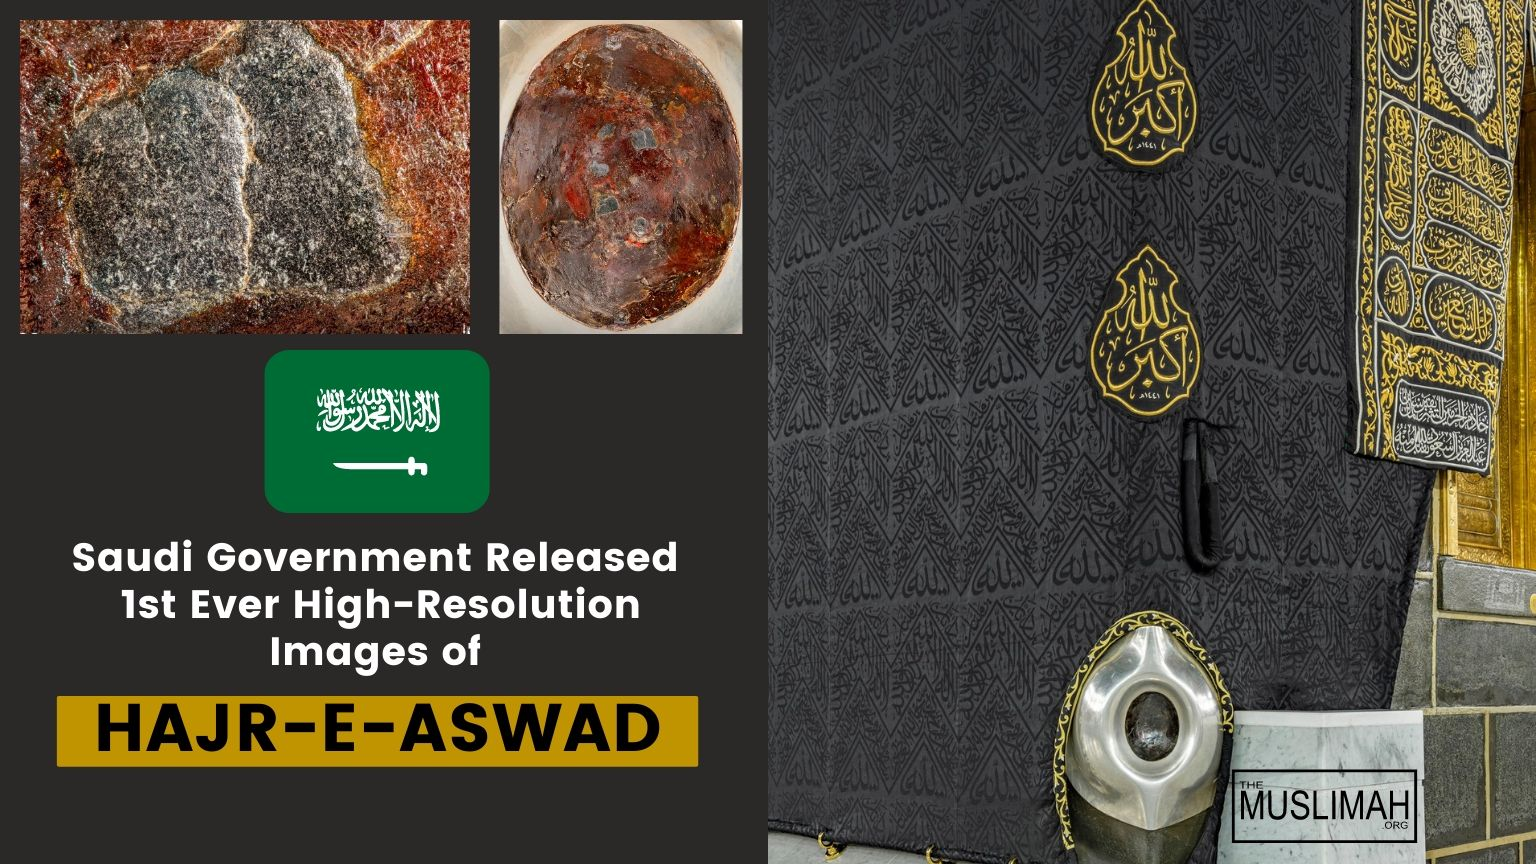 1st Ever High-Resolution Images of Hajr-e-Aswad Released by 🇸🇦 Saudi Govt.